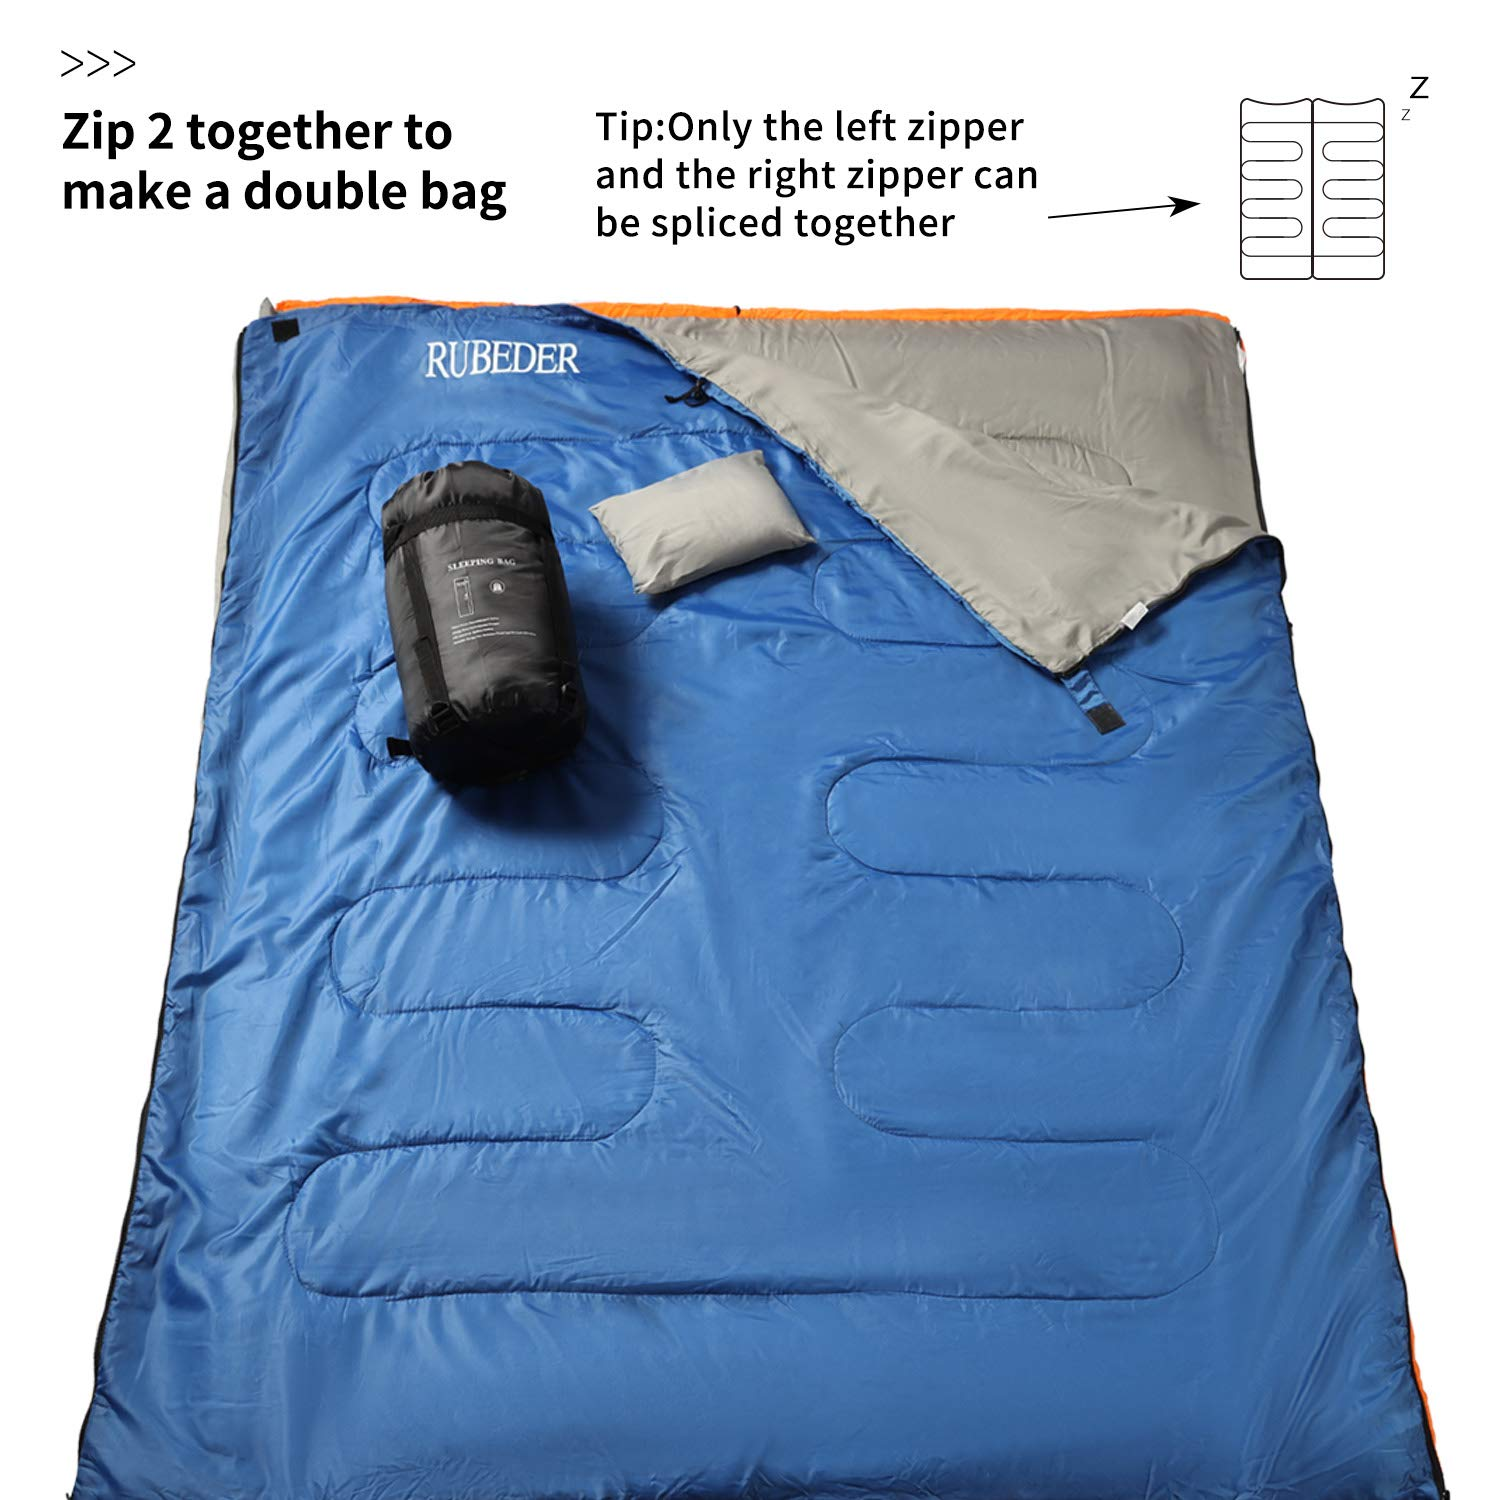 RUBEDER Sleeping Bag – Lightweight Portable, Waterproof, Comfort with Compression Sack – Great for 3 Season Traveling,Camping,Hiking Sleeping Bags